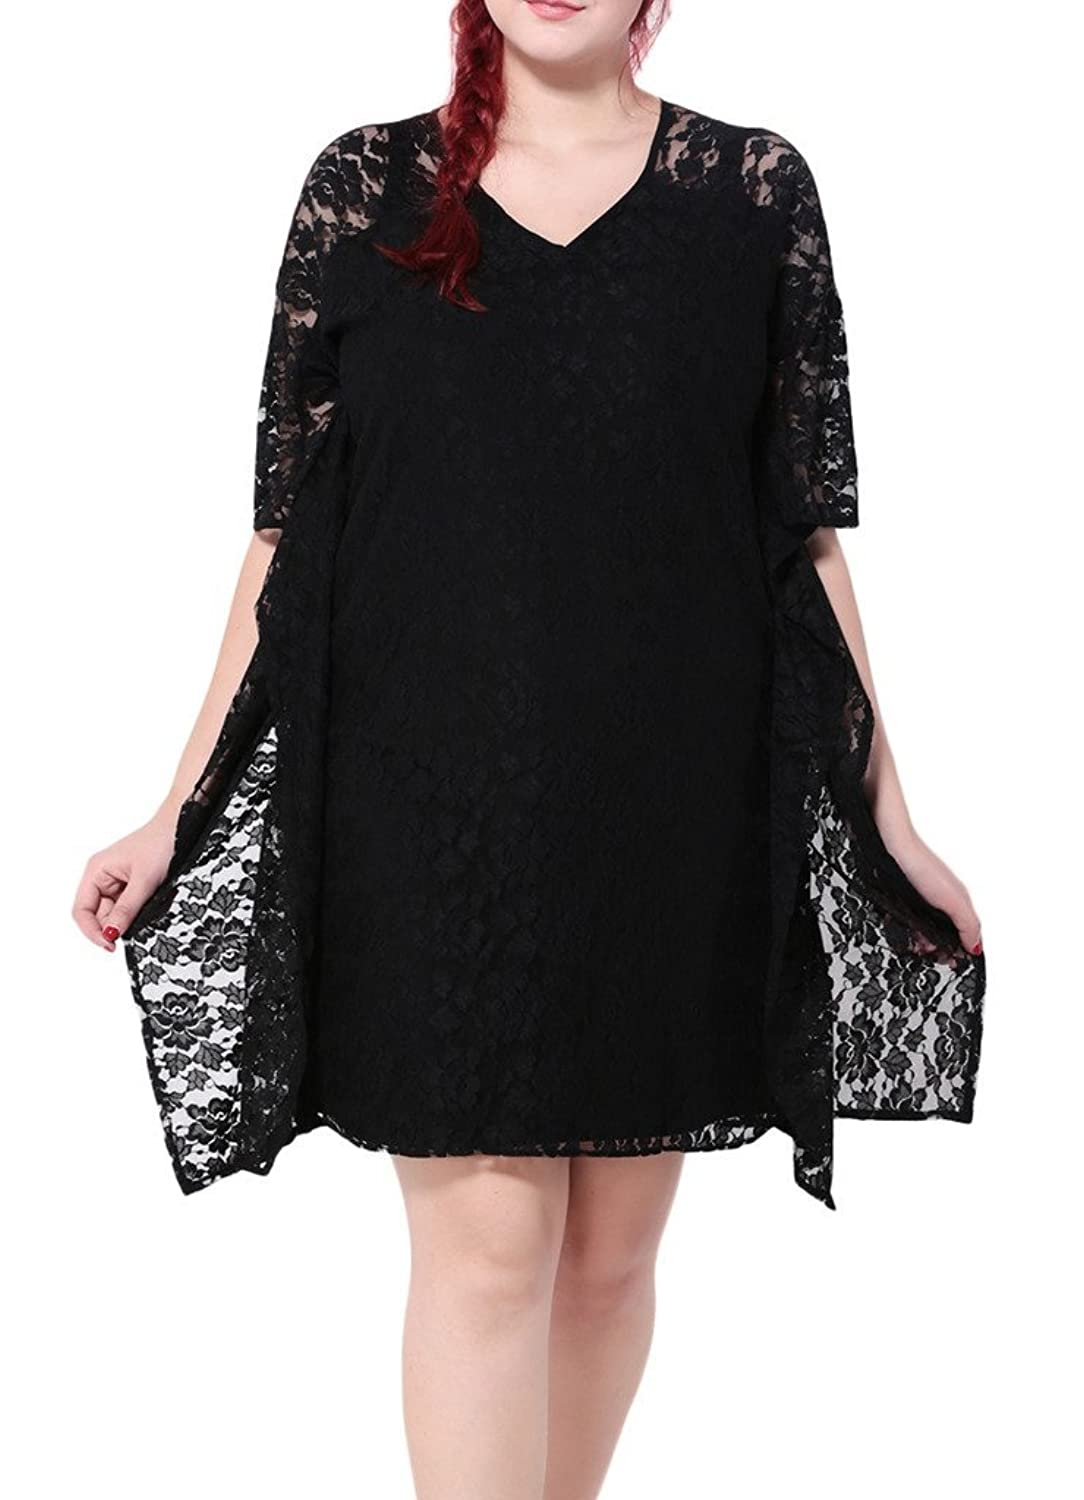 Bigood Plus Size 1/2 Armle Damen Lace Elegante Kleid Knielanges Kleid Party Kleid Schwarz